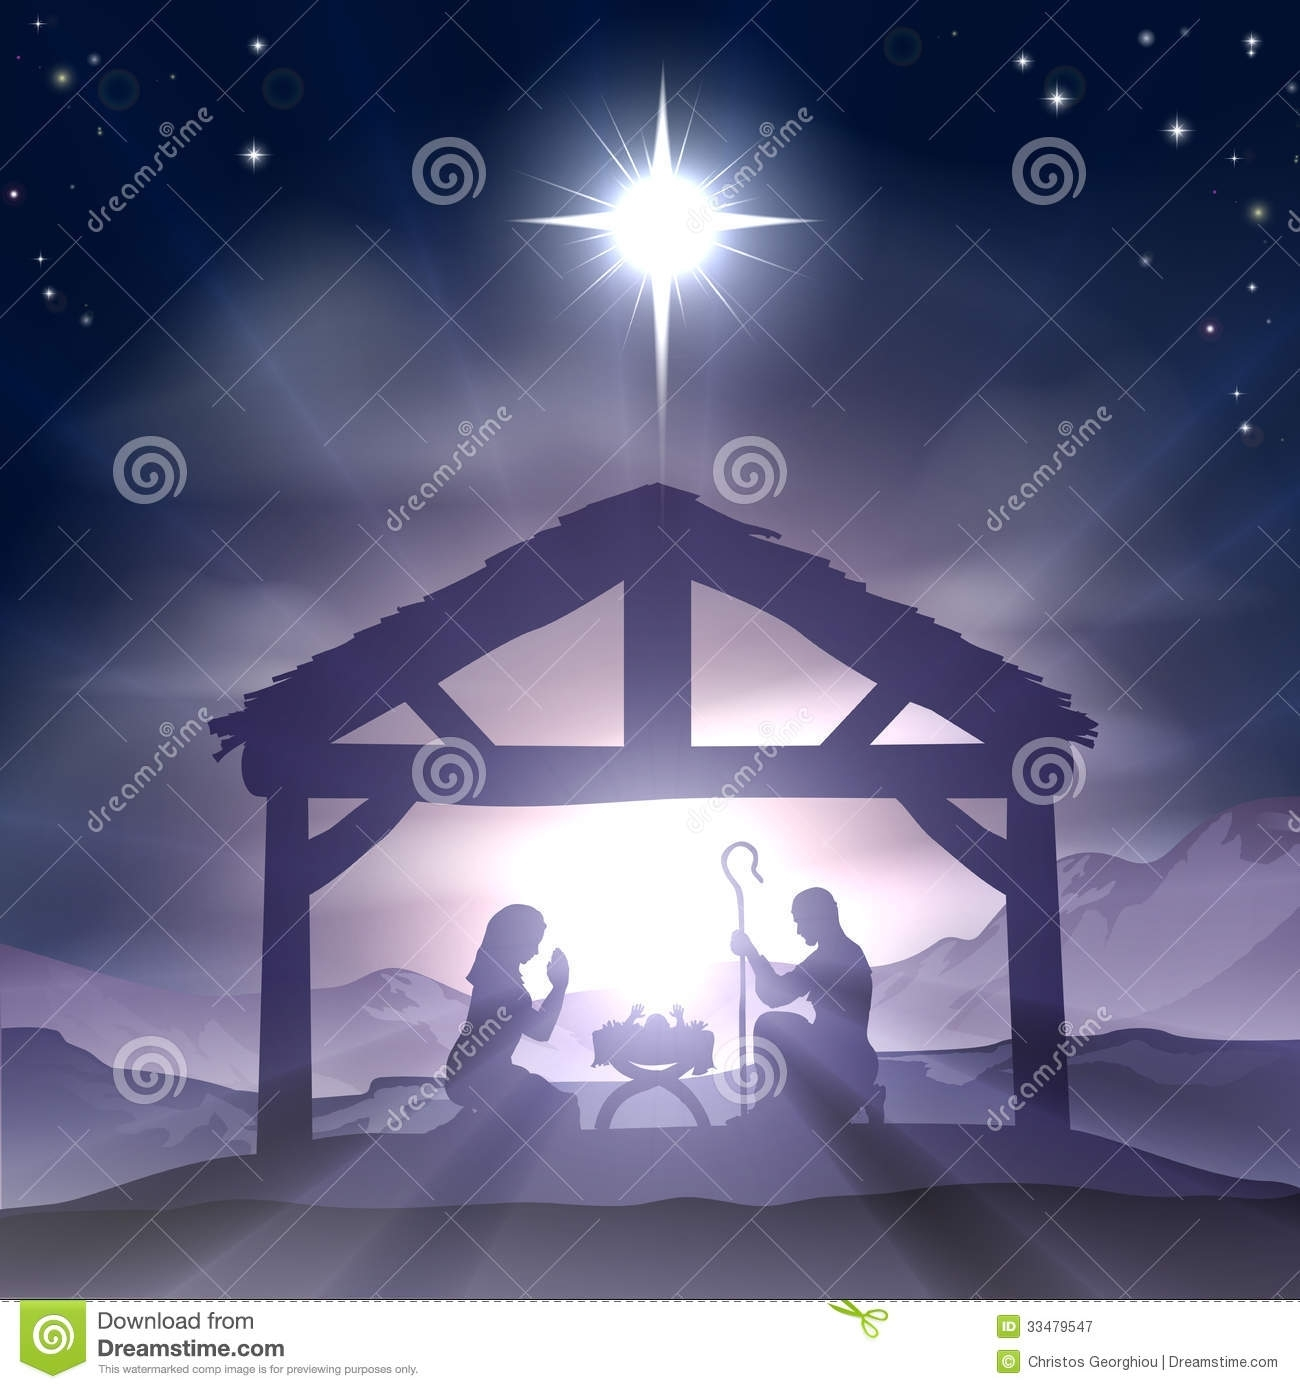 christmas manger nativity scene stock vector - illustration of crib